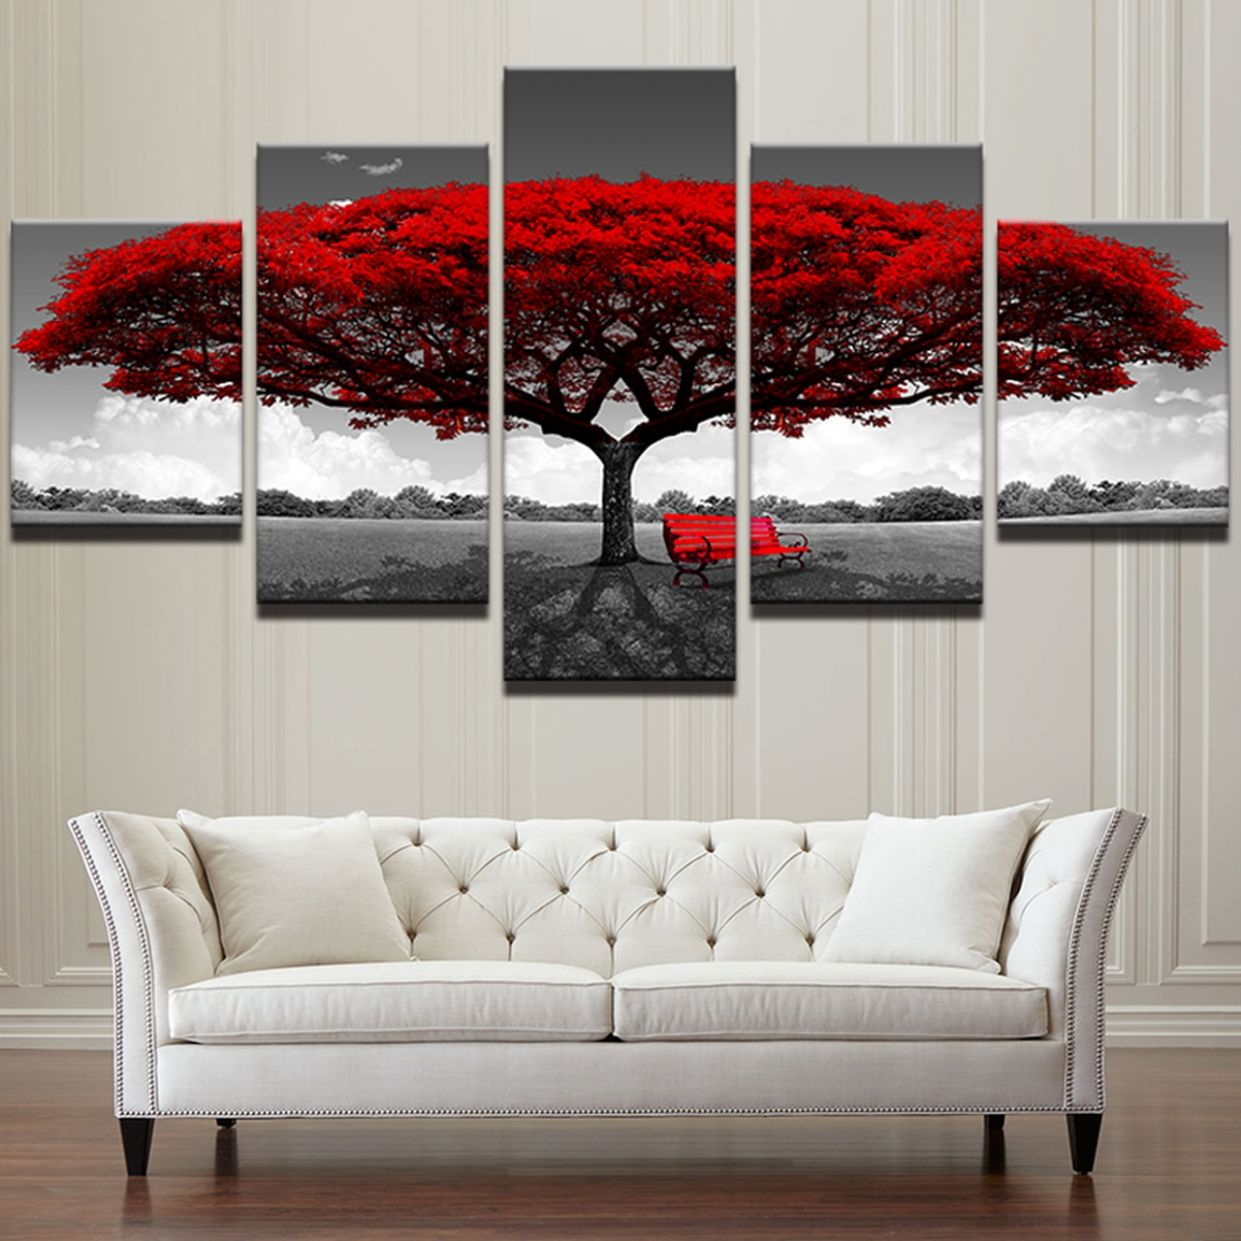 Modular Canvas HD Prints Posters Home Decor Wall Art Pictures 12 Pieces Red  Tree Art Scenery Landscape Paintings Framework PENGDA